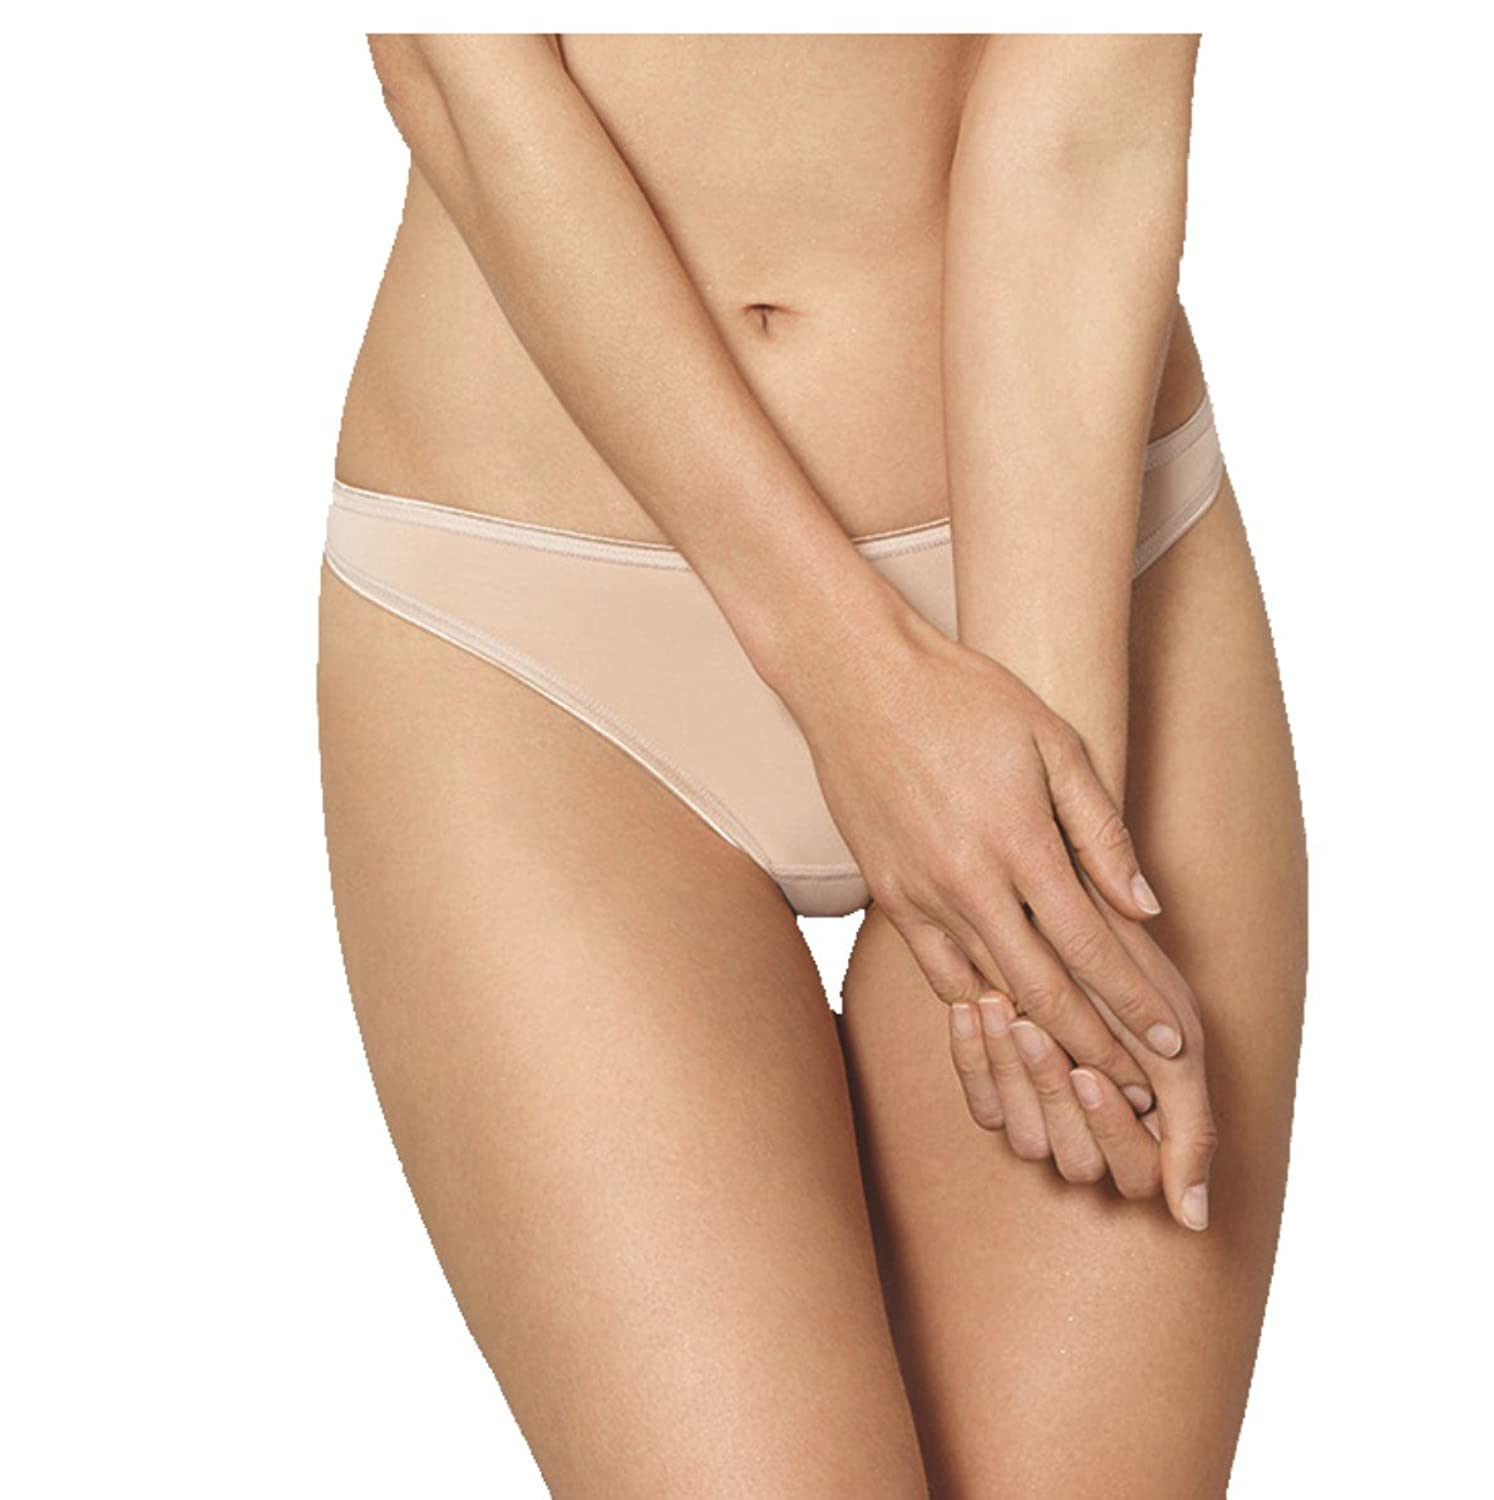 Speidel Damen Magic Hip Hüftstring 5er Pack 9410 günstig